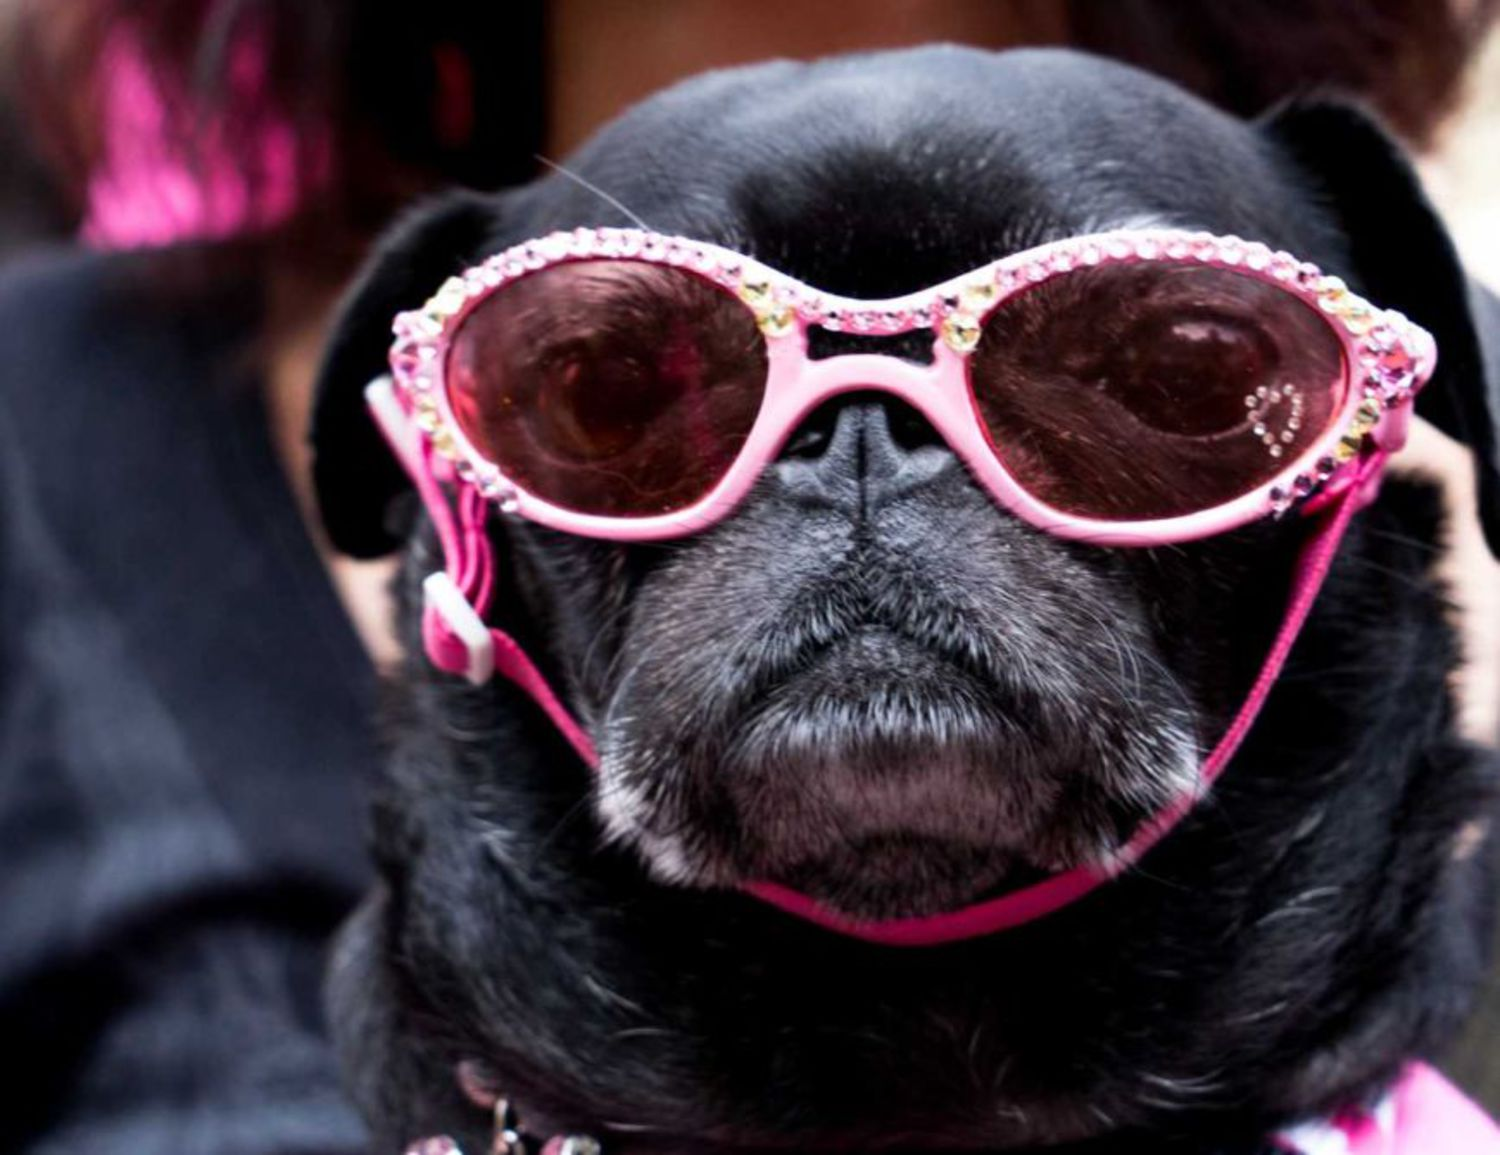 Floppy ears and a short snout can't stop these stylish shades.